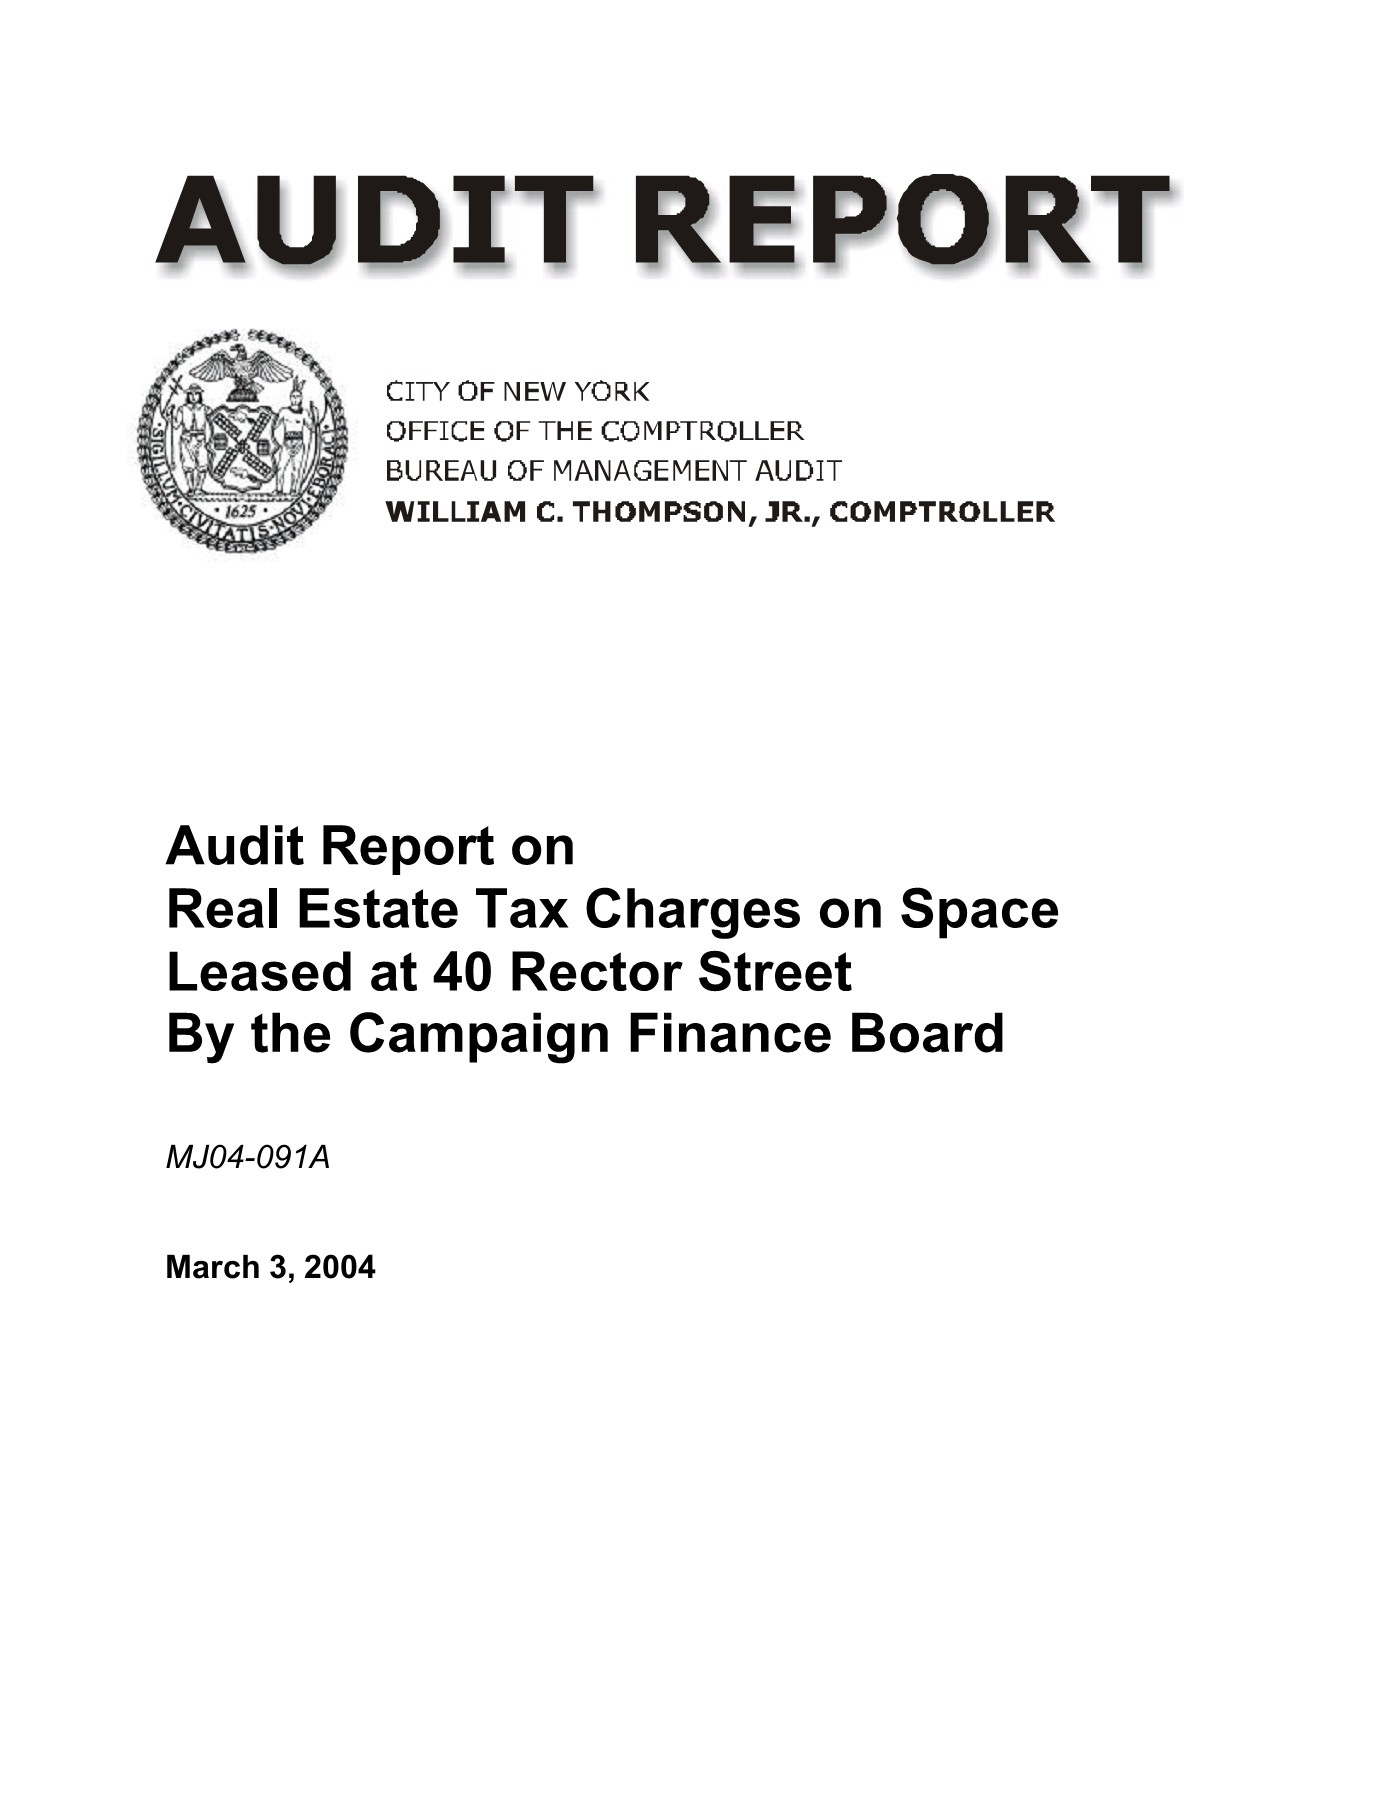 Audit Report on Real Estate Tax Charges on Space Leased at